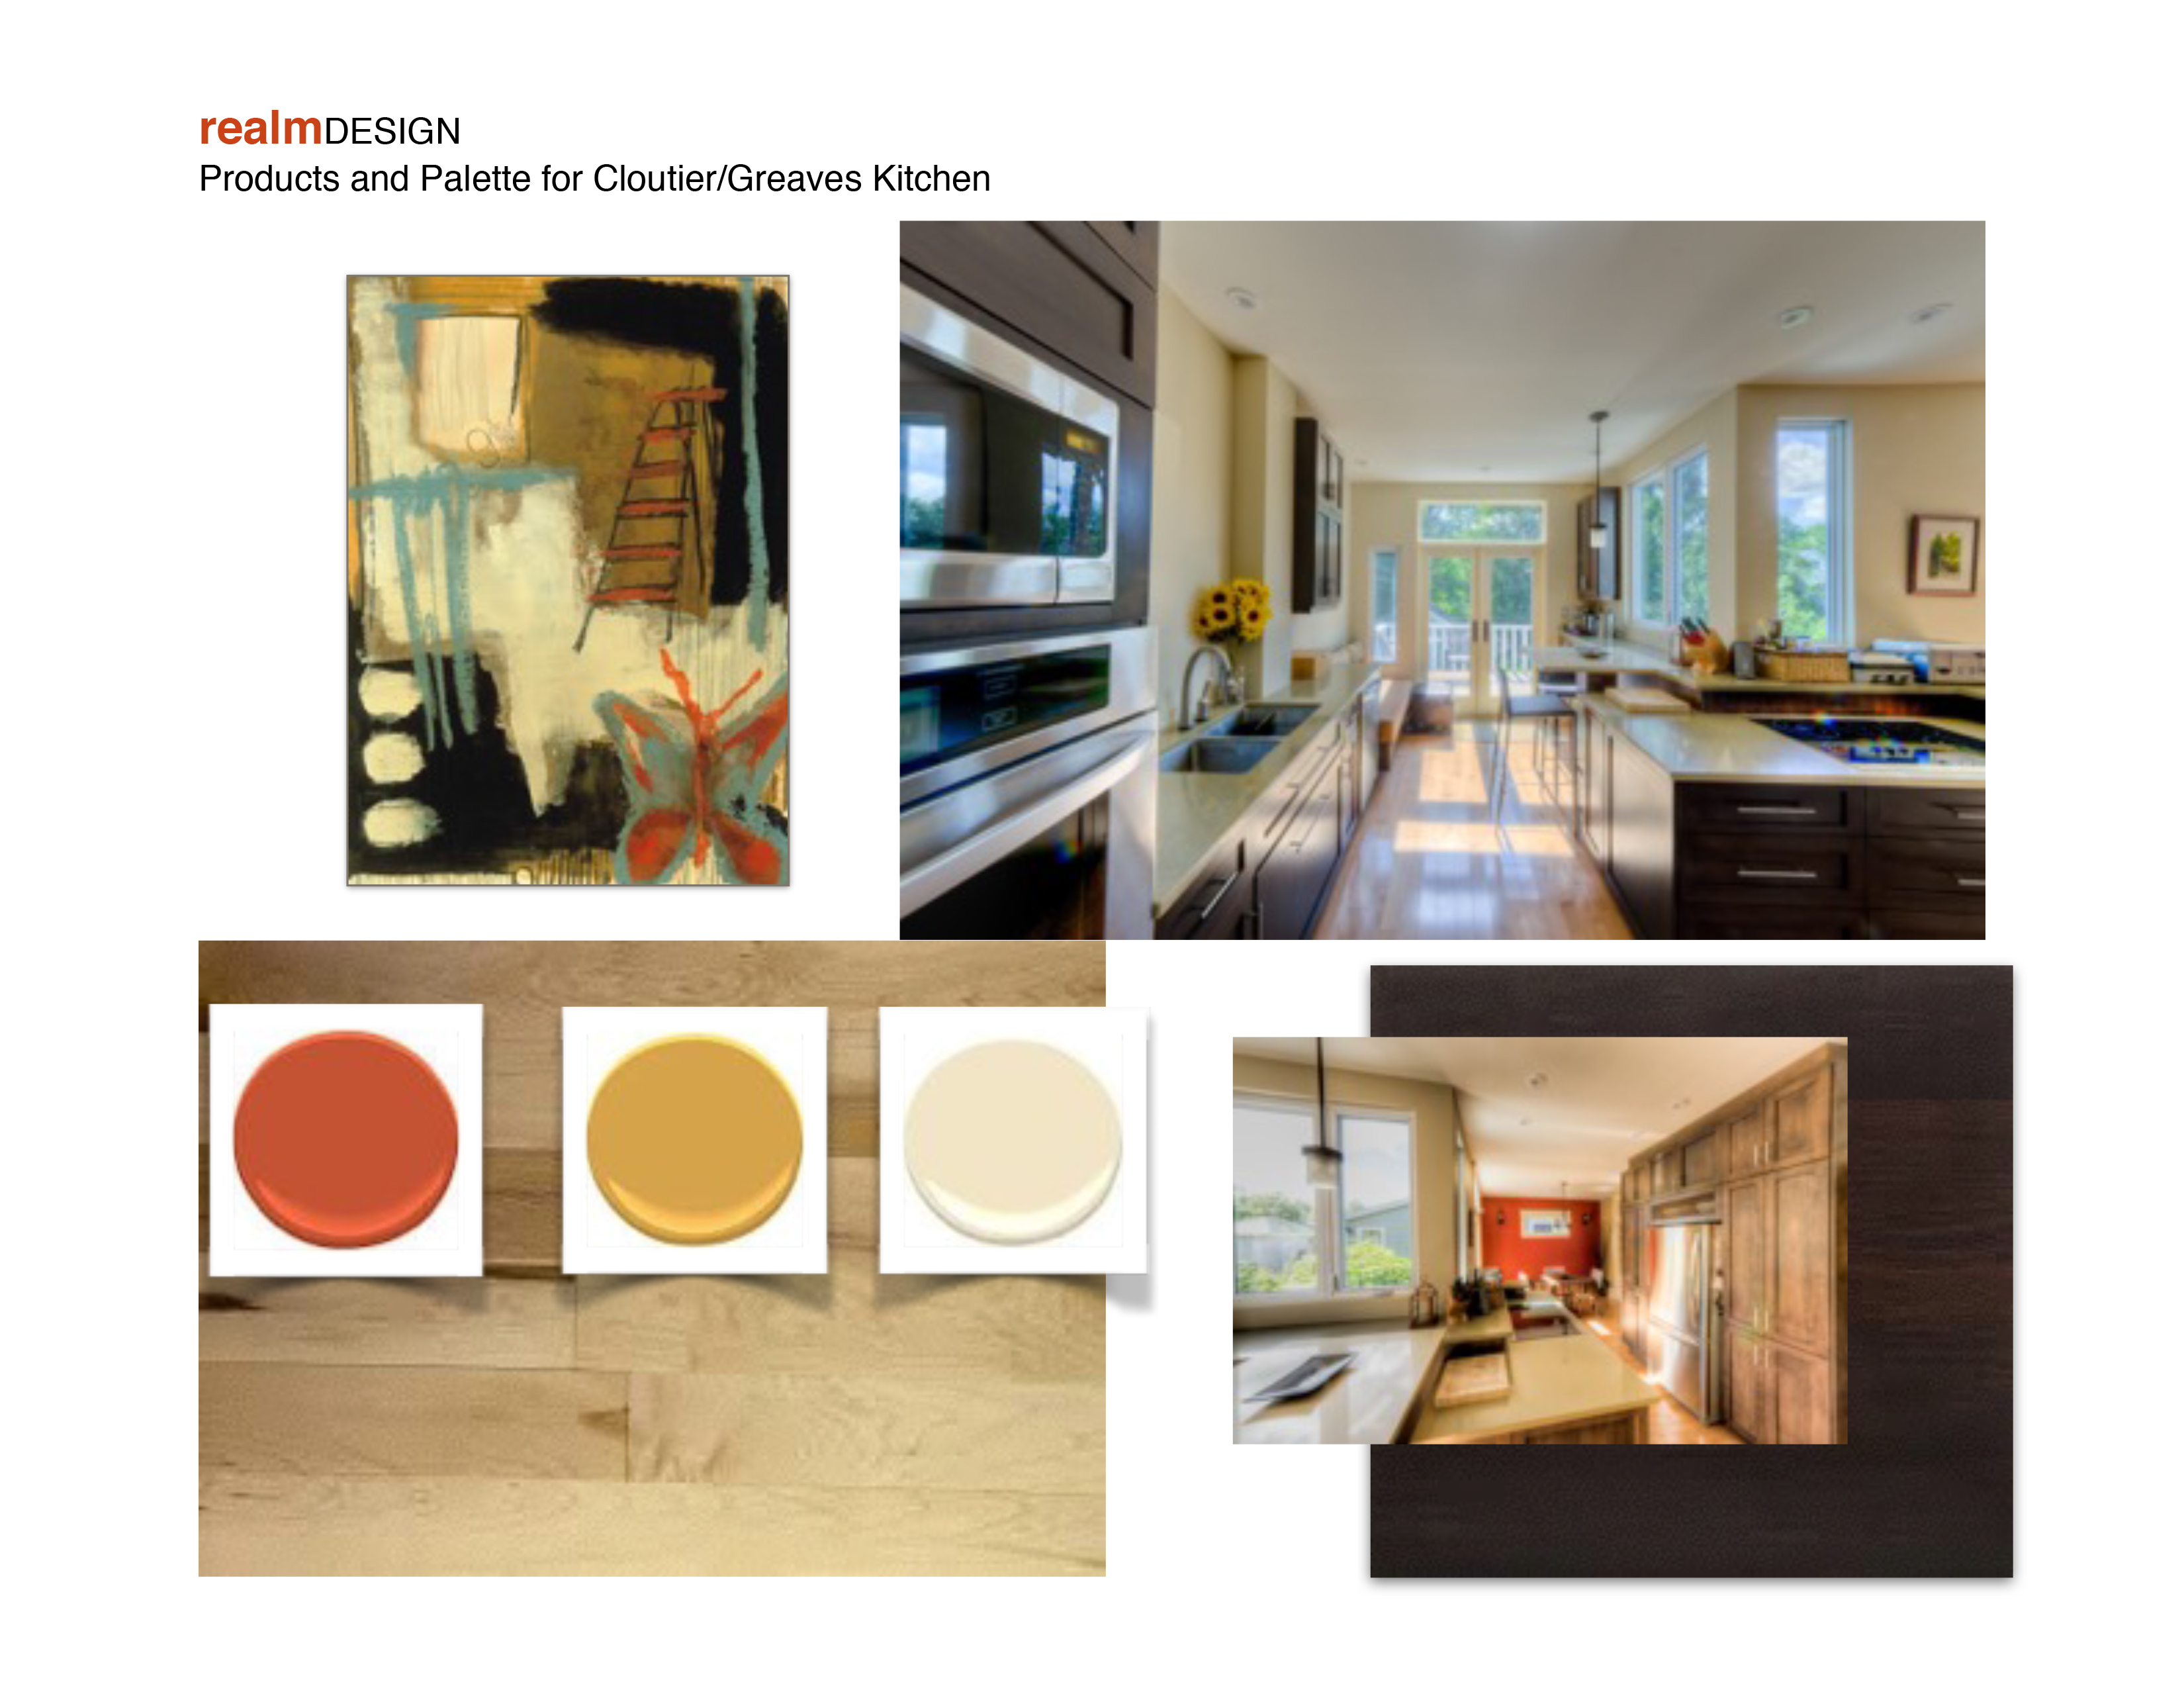 Palette and products for Cedar St.jpg